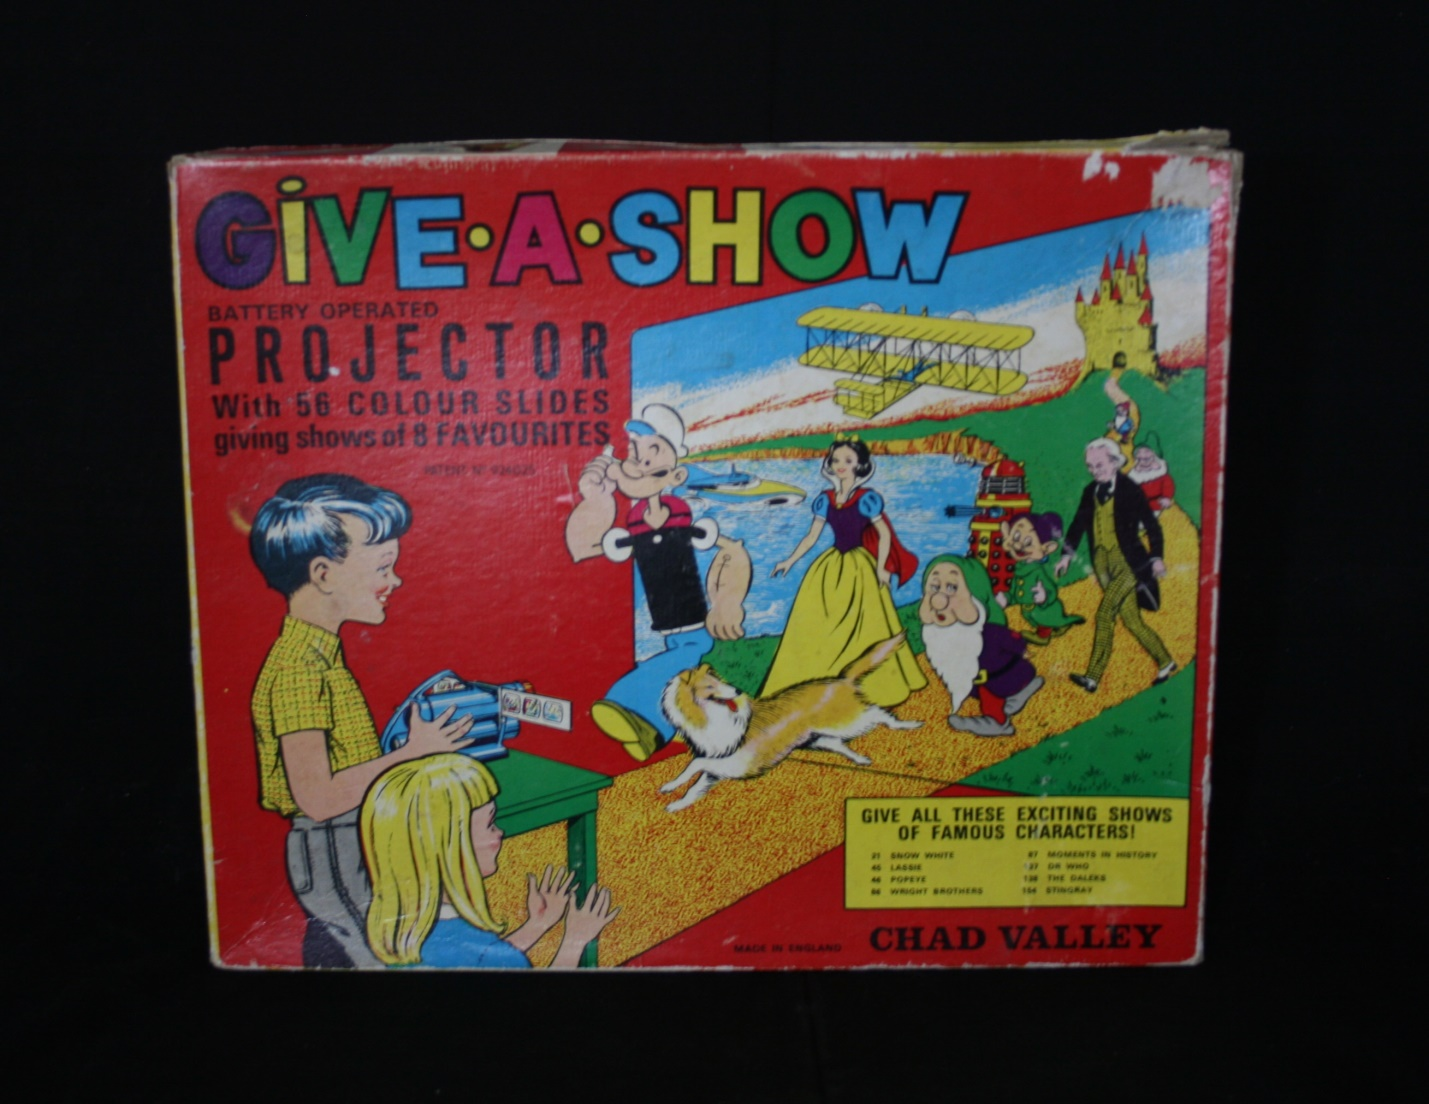 Chad Valley Ltd., Give-A-Show Projector (includes Doctor Who slides and William Hartnell image on box)